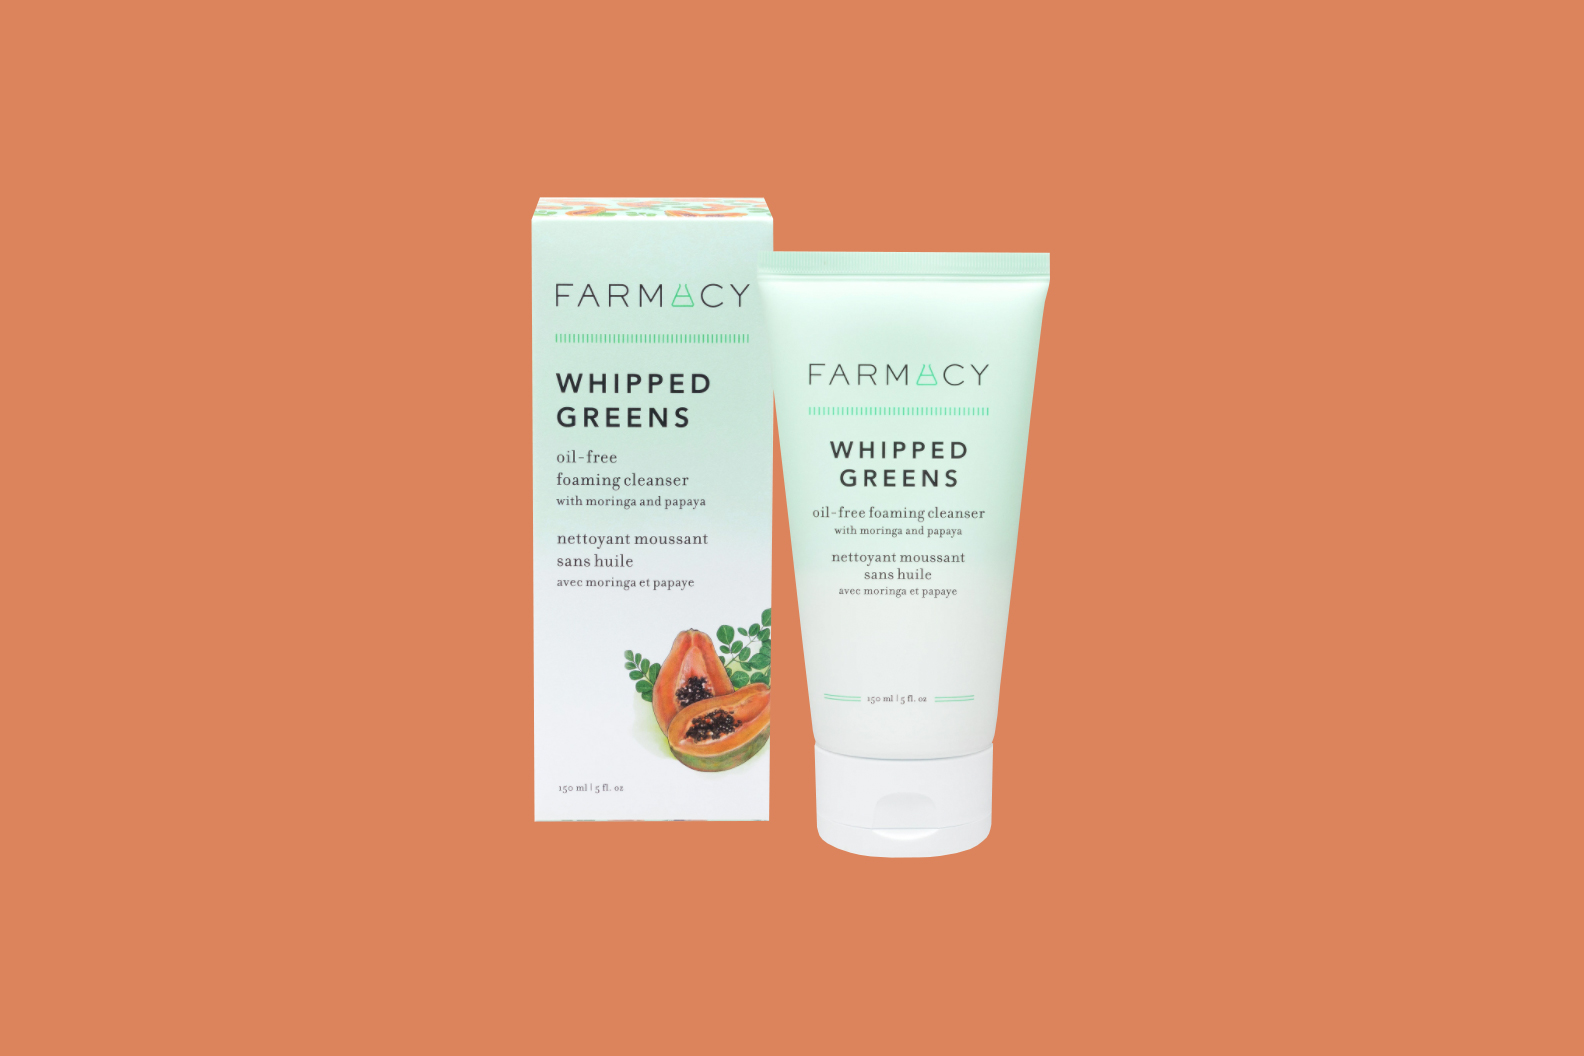 Farmacy Whipped Greens Oil-Free Foaming Cleanser With Moringa and Papaya